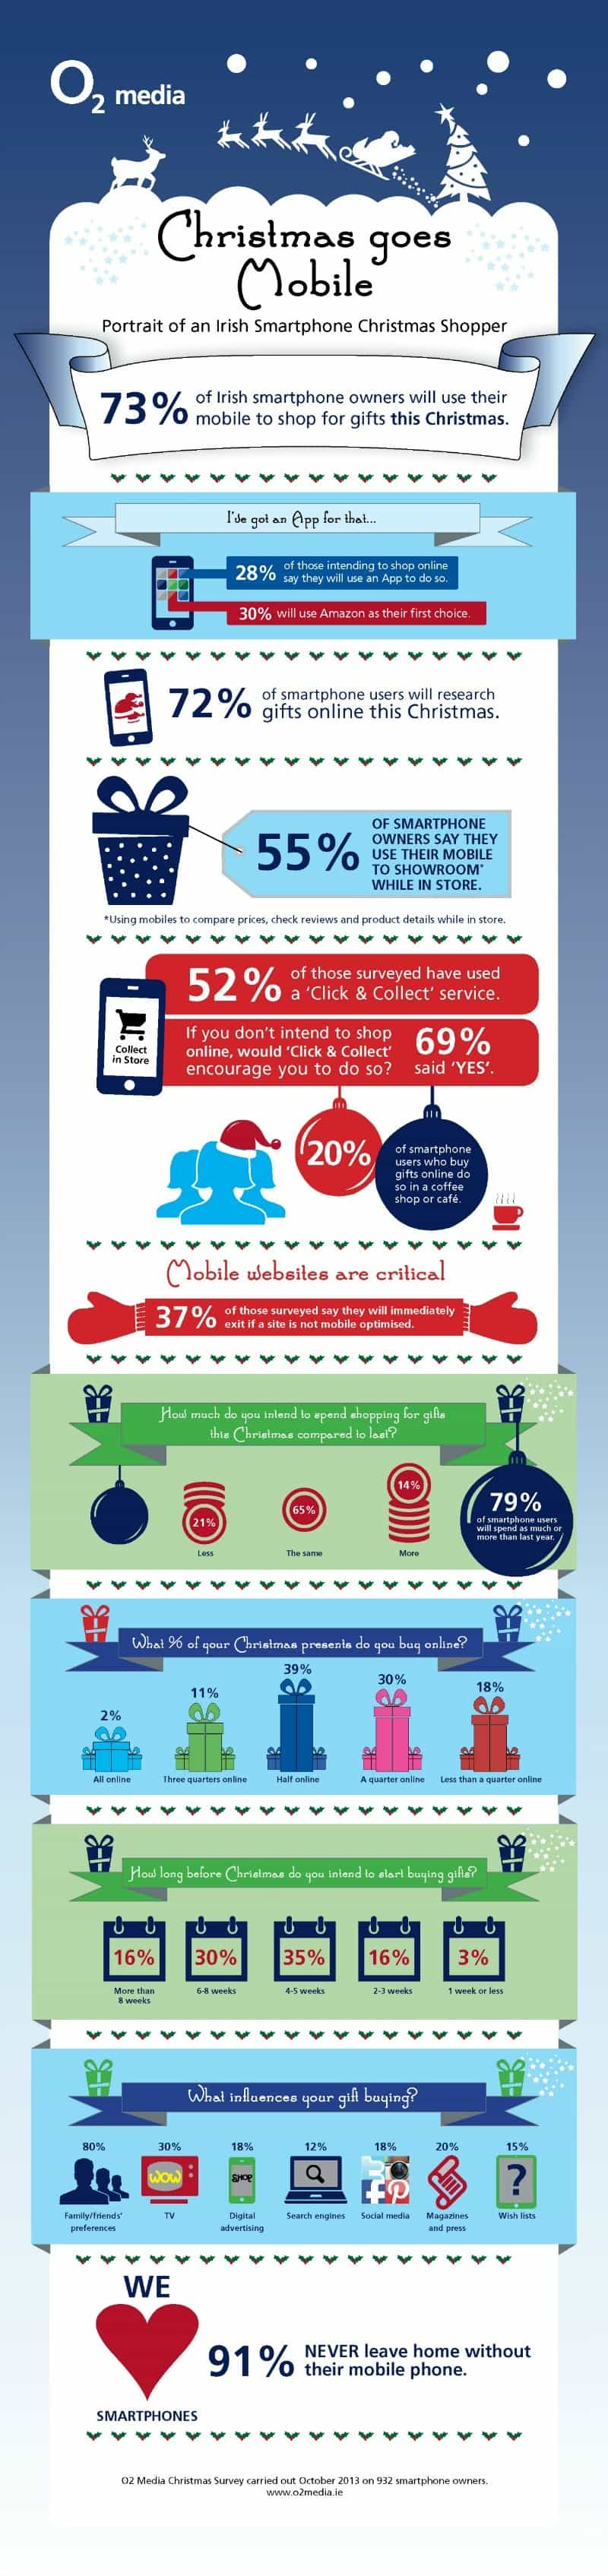 Christmas 2013 in Ireland is mobile - the portrait of an Irish Smartphone Christmas Shopper O2 Media Research